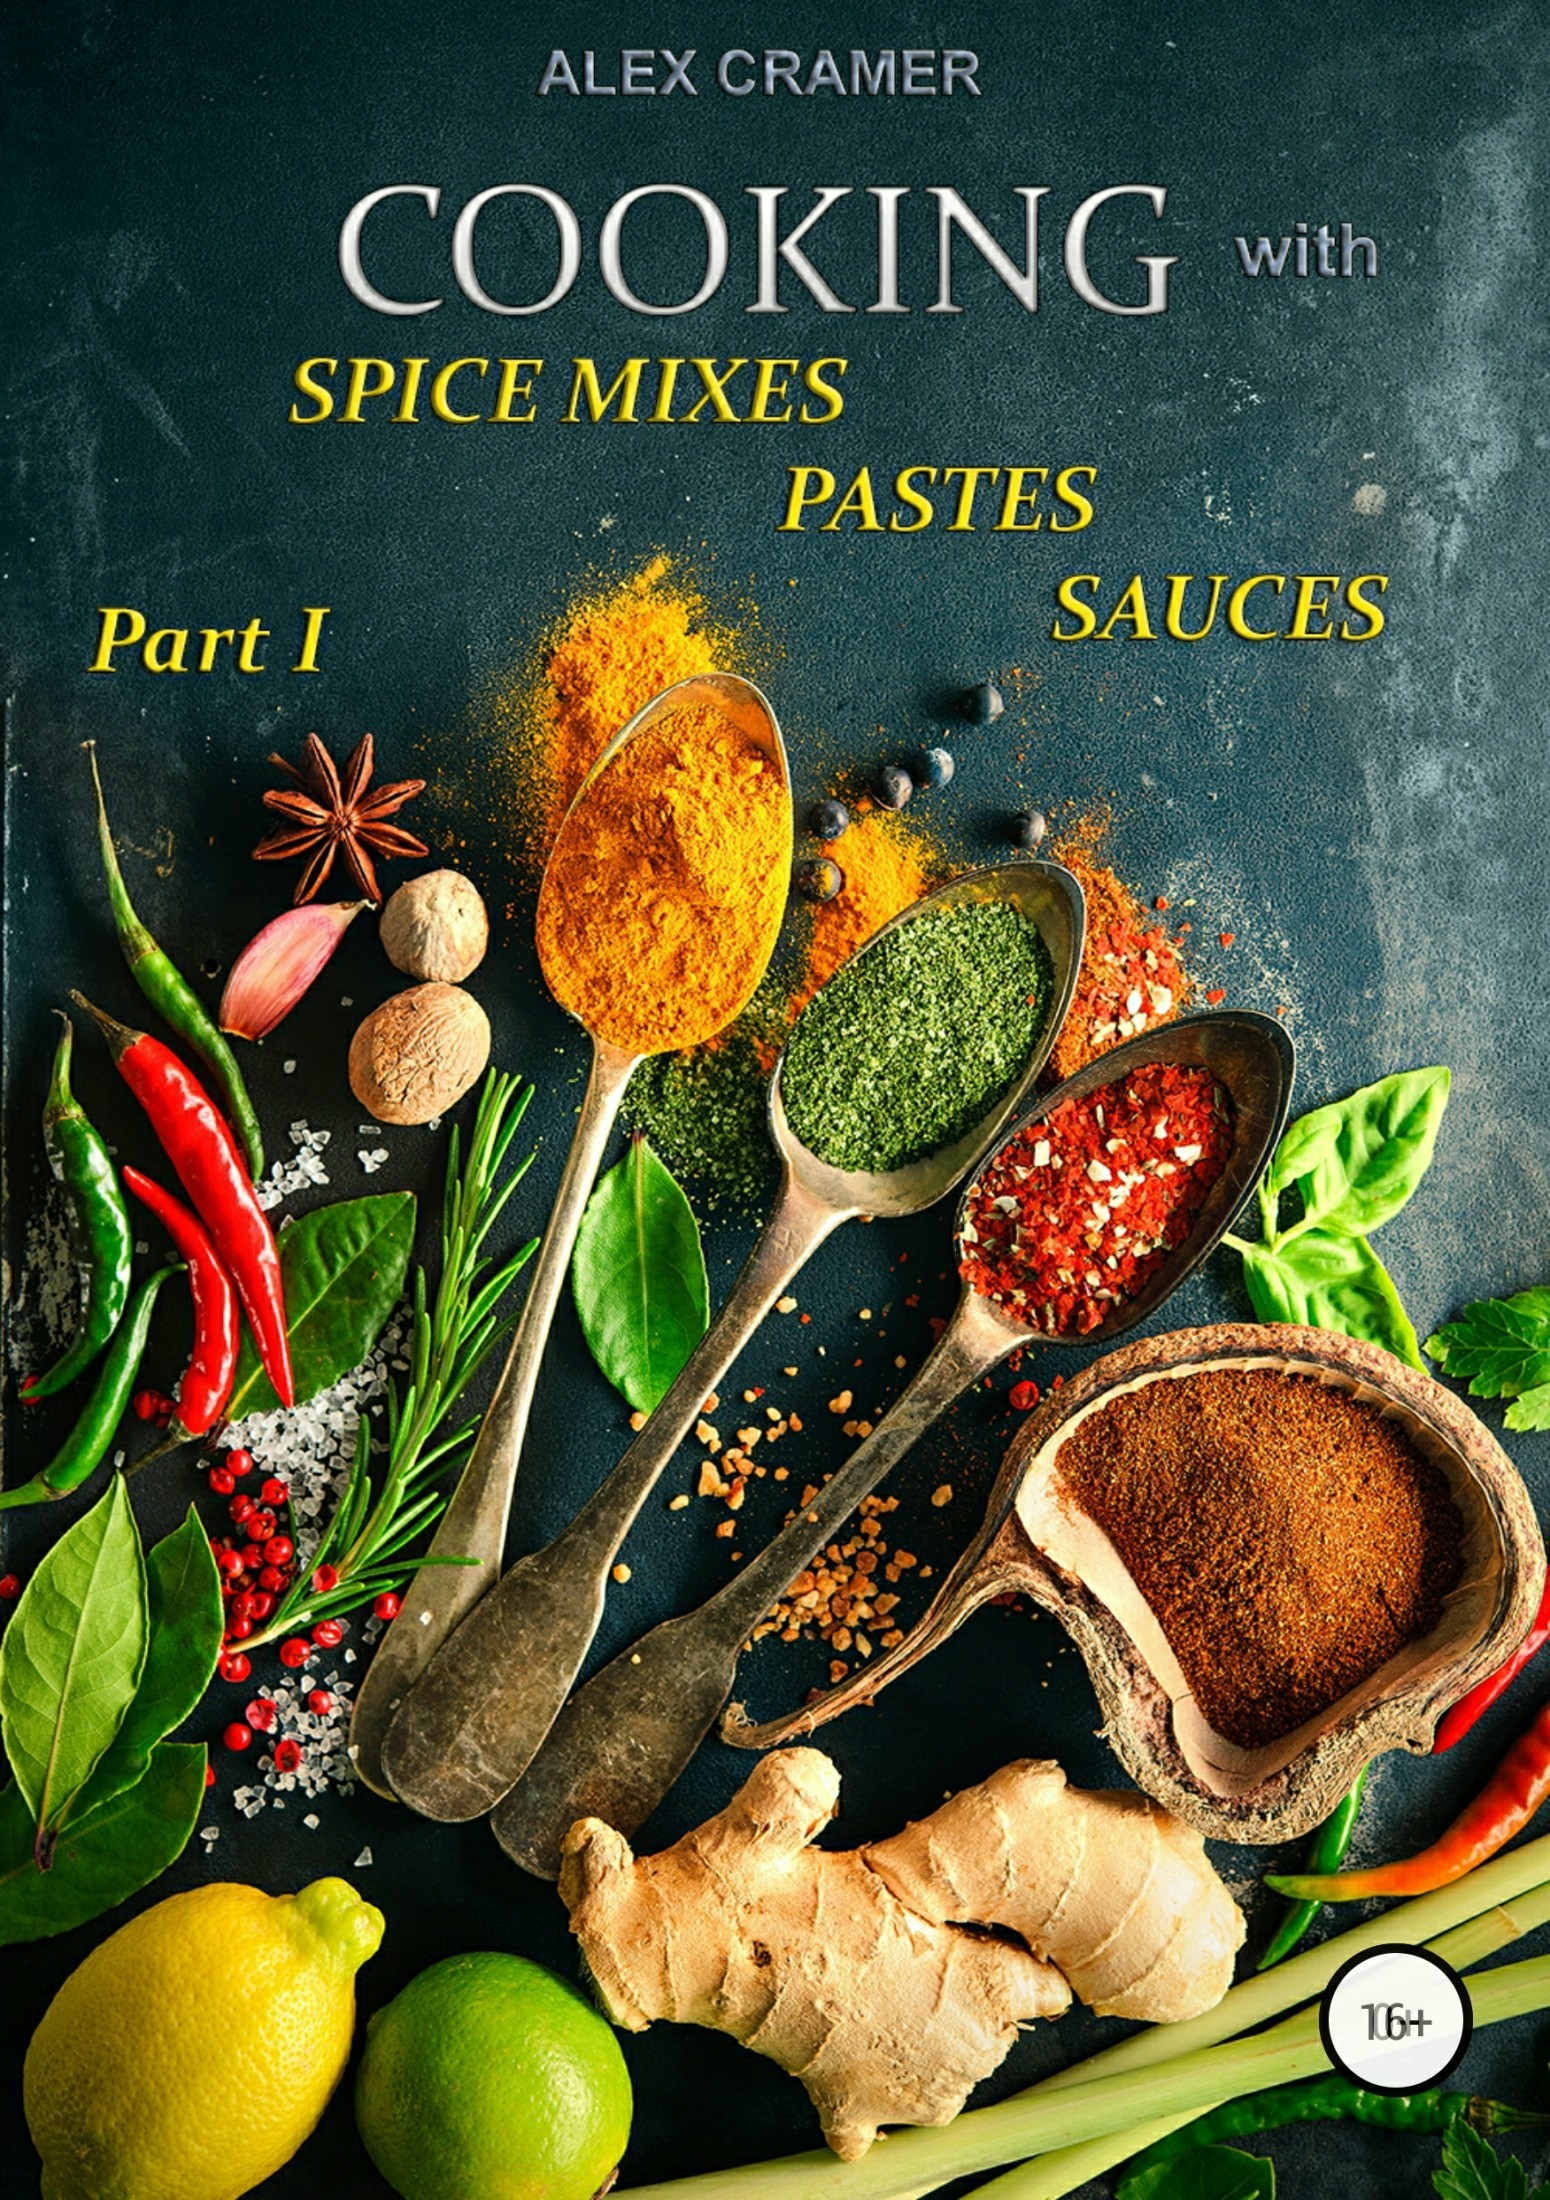 Обложка книги Cooking with spice mixes, pastes and sauces, автор Alex Cramer